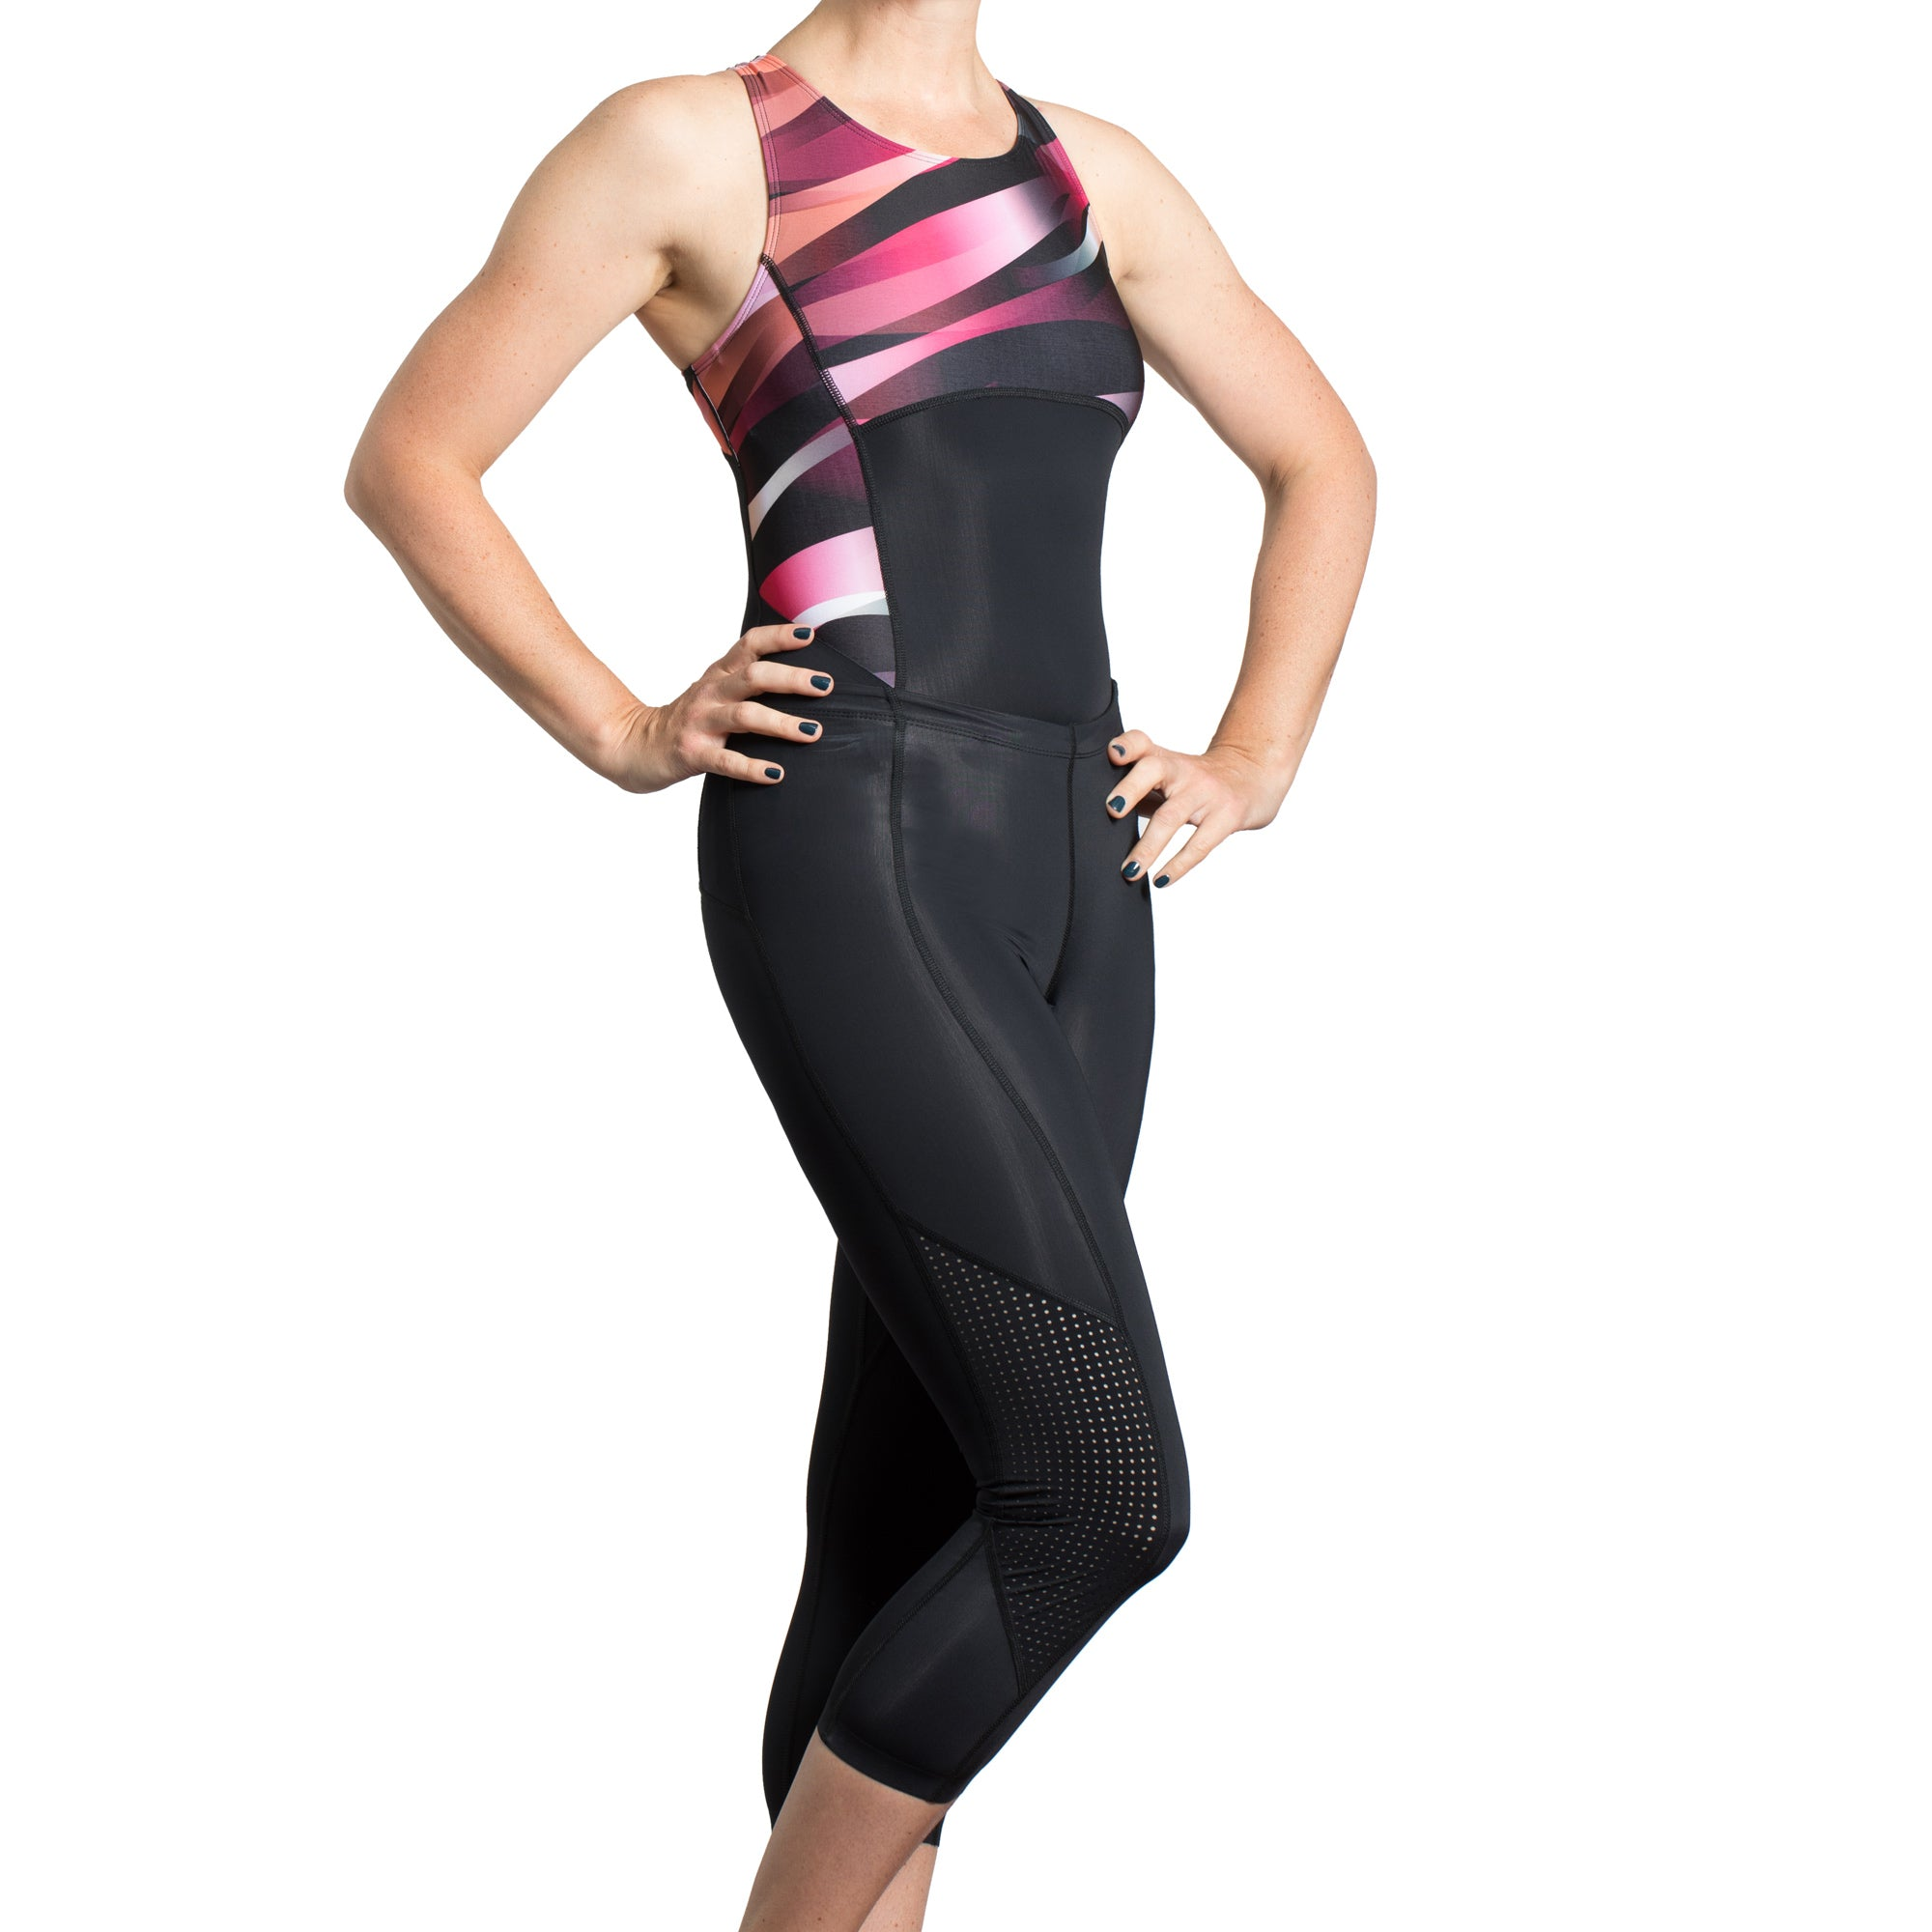 Wave & Pace Swimsuit and Triathlon Capri Set - SALE 25% OFF